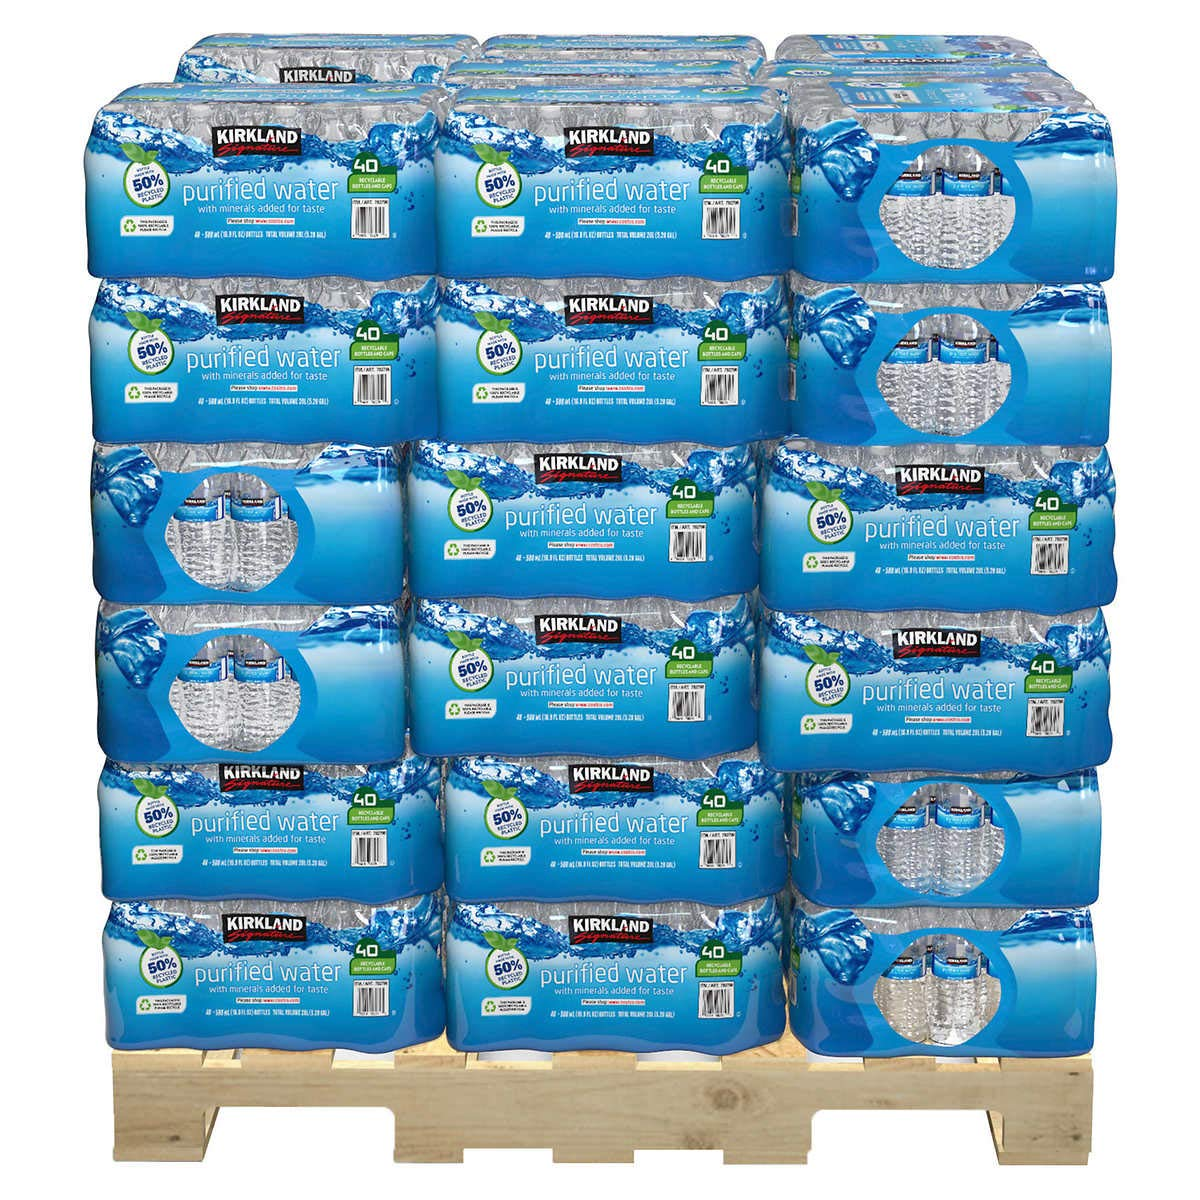 Kirkland Signature Purified Drinking Water, 16.9 Ounce 40 Bottles, 48 Cases / Pallet